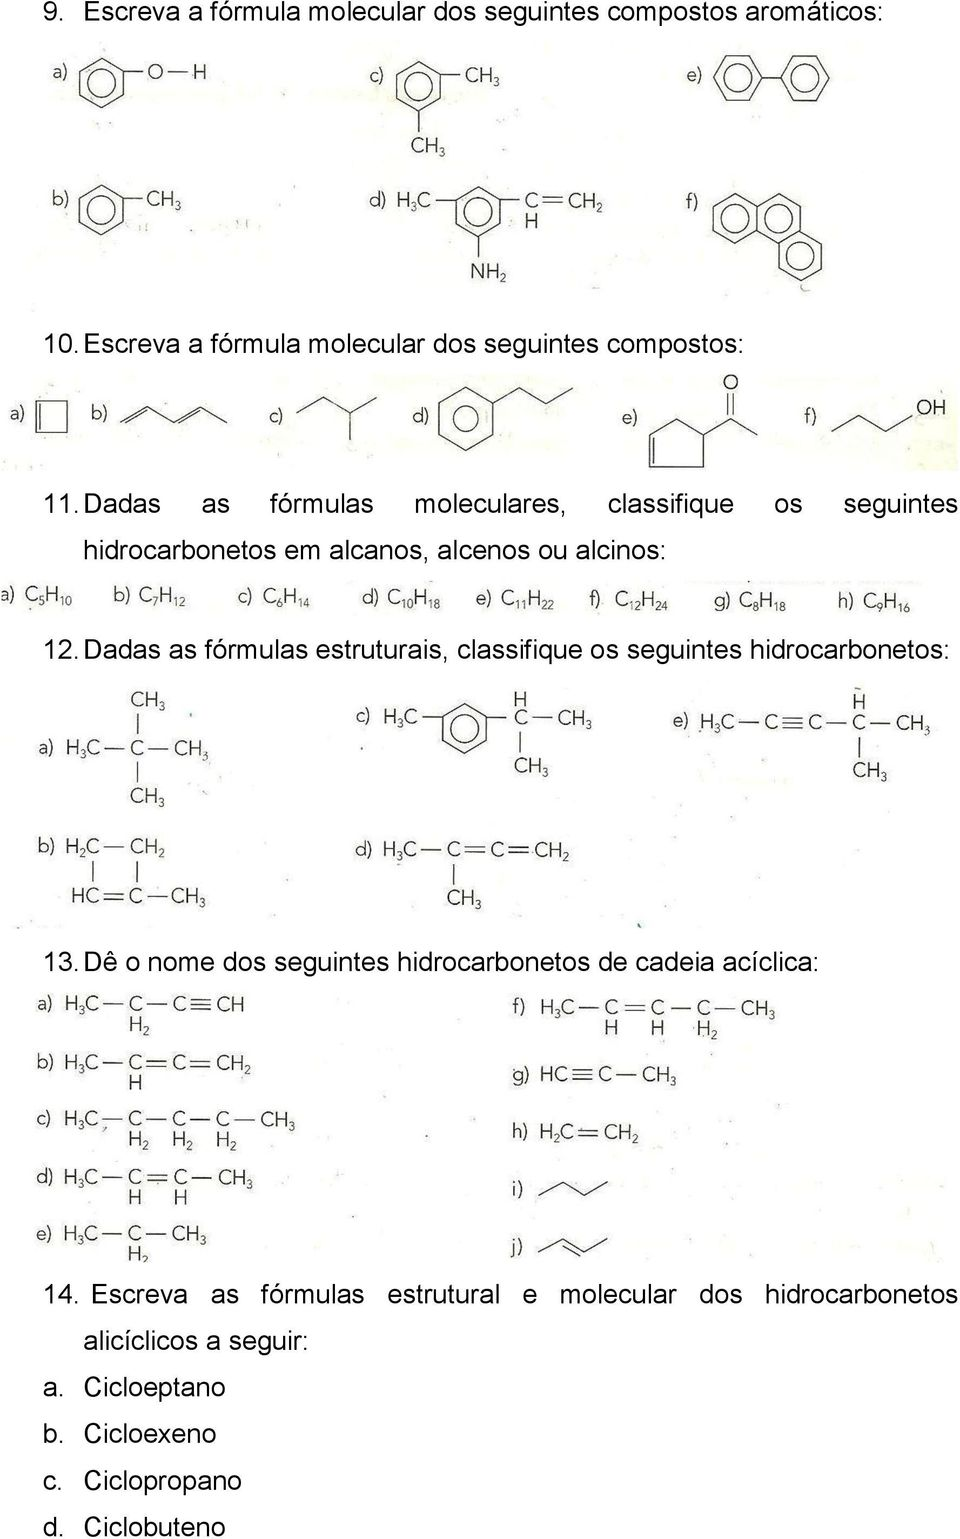 Dadas as fórmulas estruturais, classifique os seguintes hidrocarbonetos: 13.